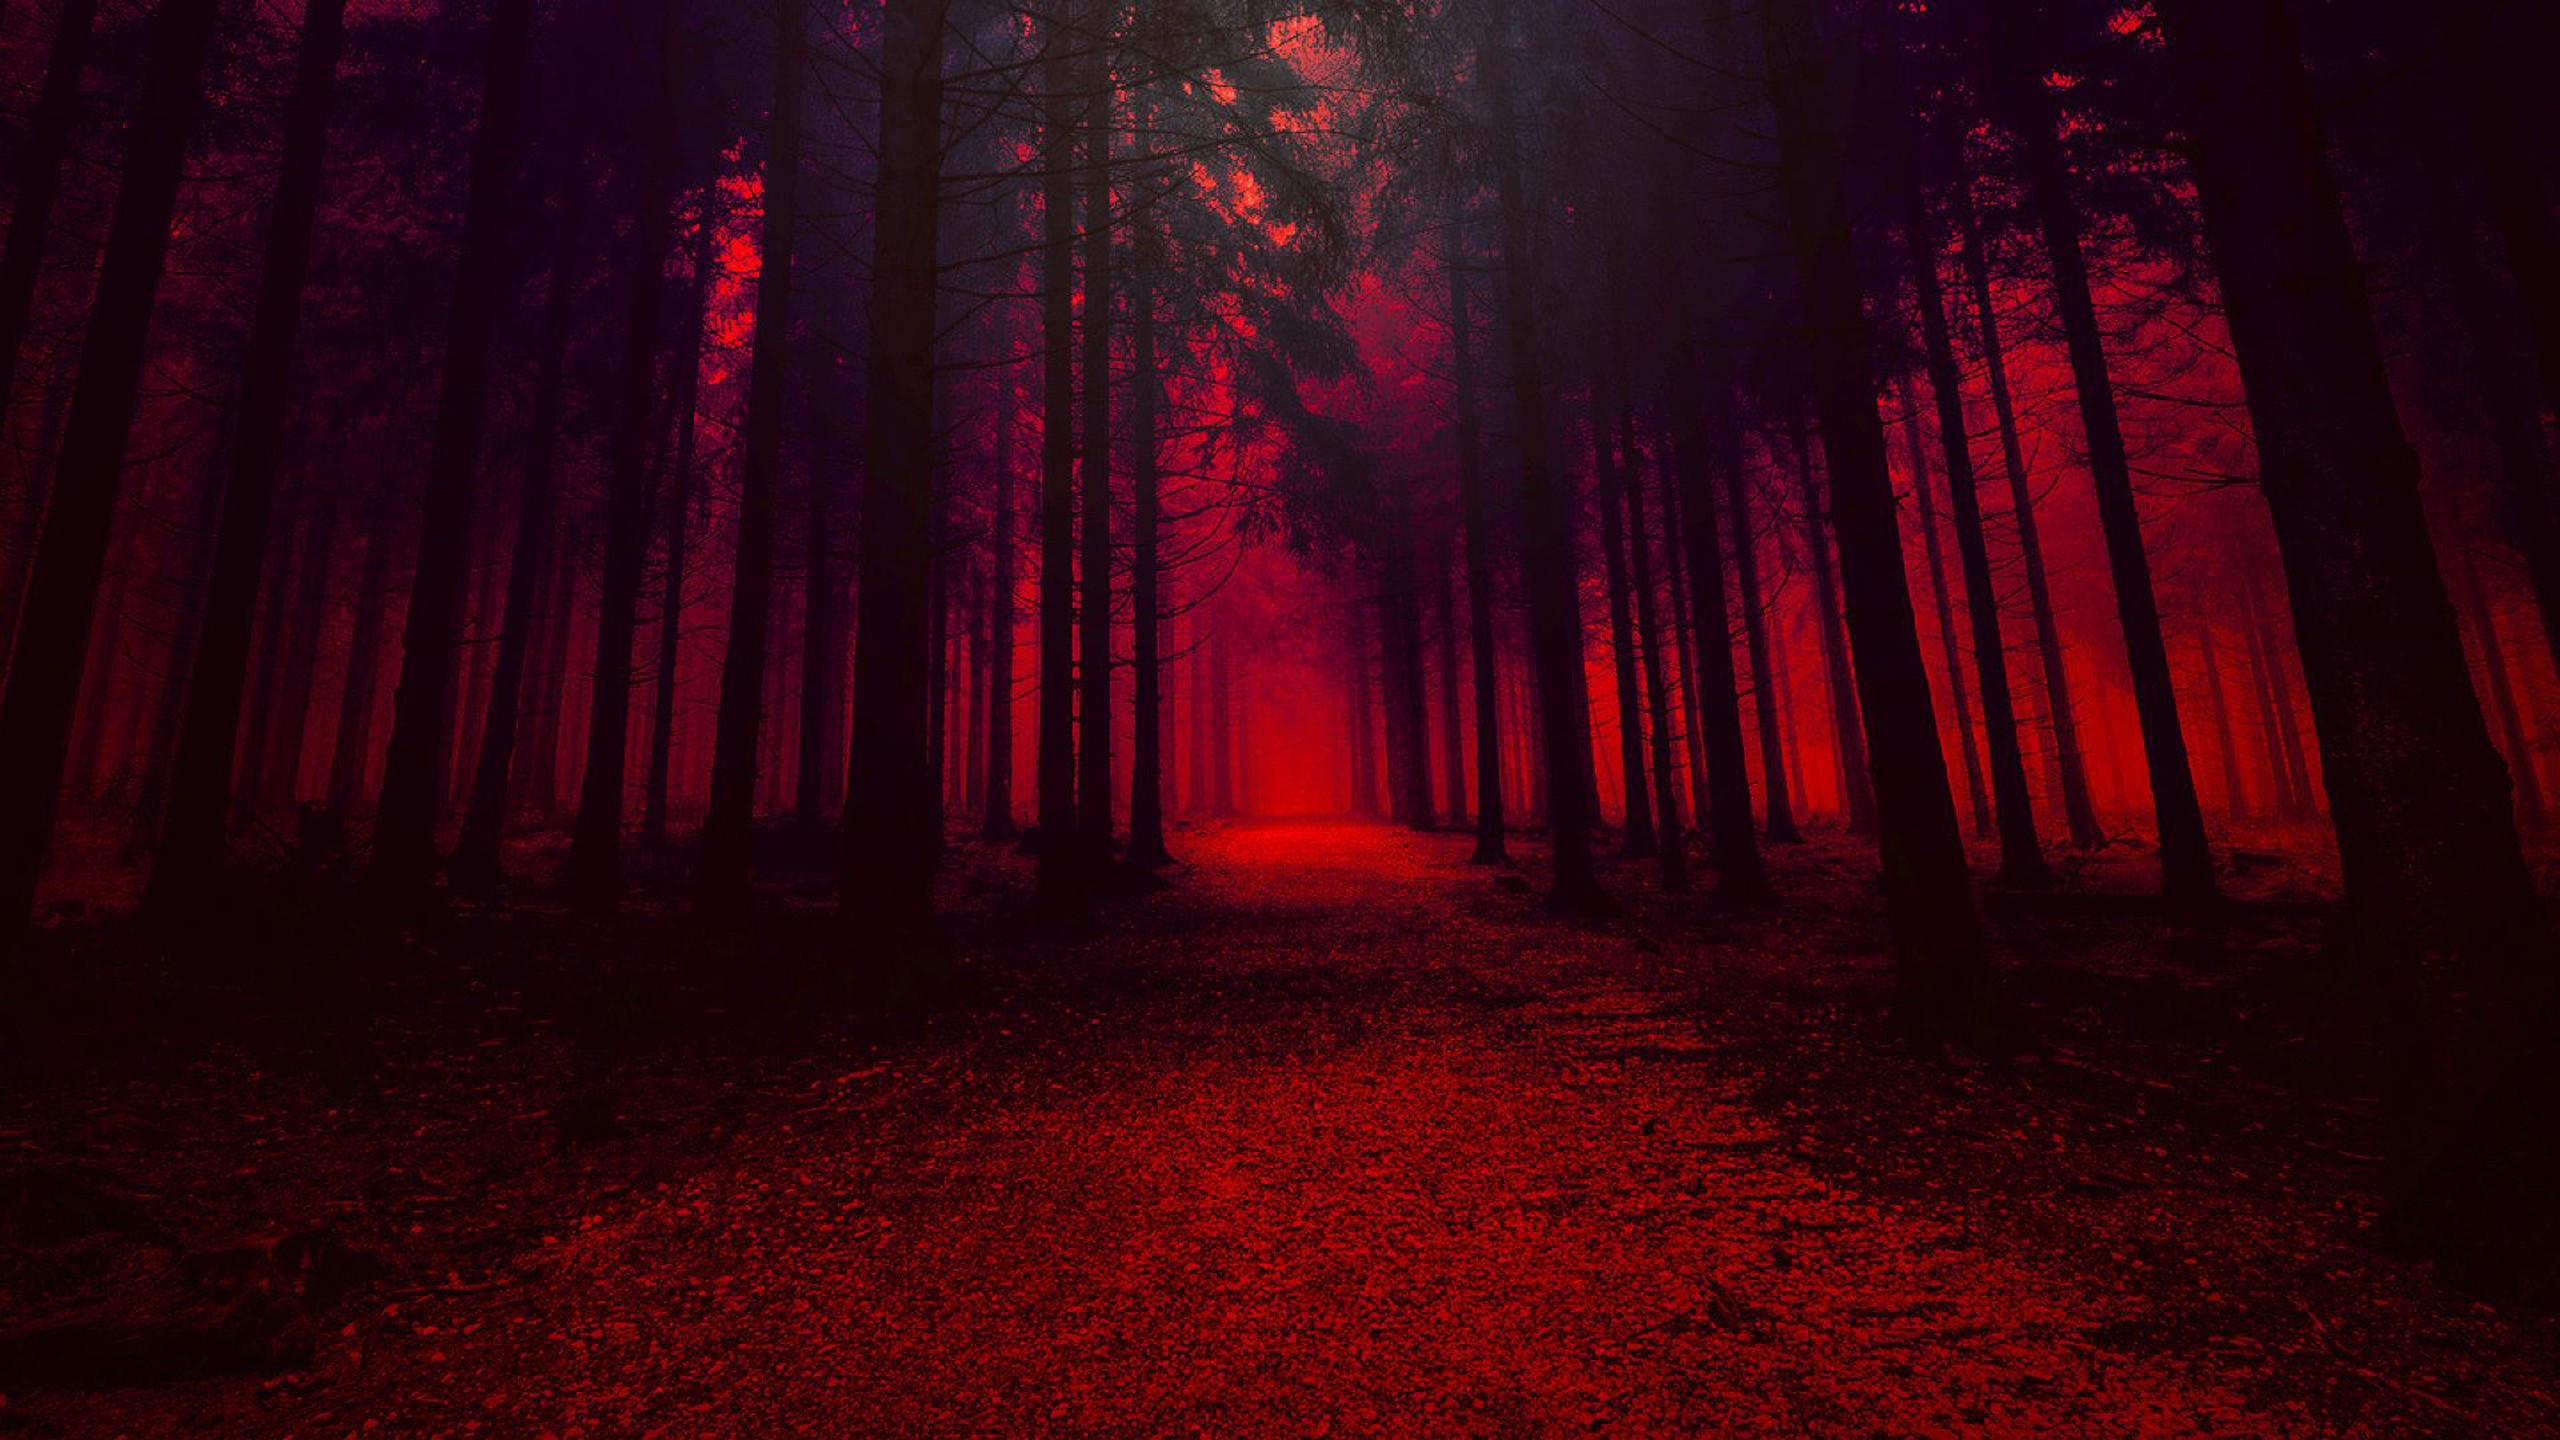 We hope you enjoy our growing collection of hd images to use as a background or home screen for your smartphone or computer. Forest With Trees In Red Effect HD Red Aesthetic ...